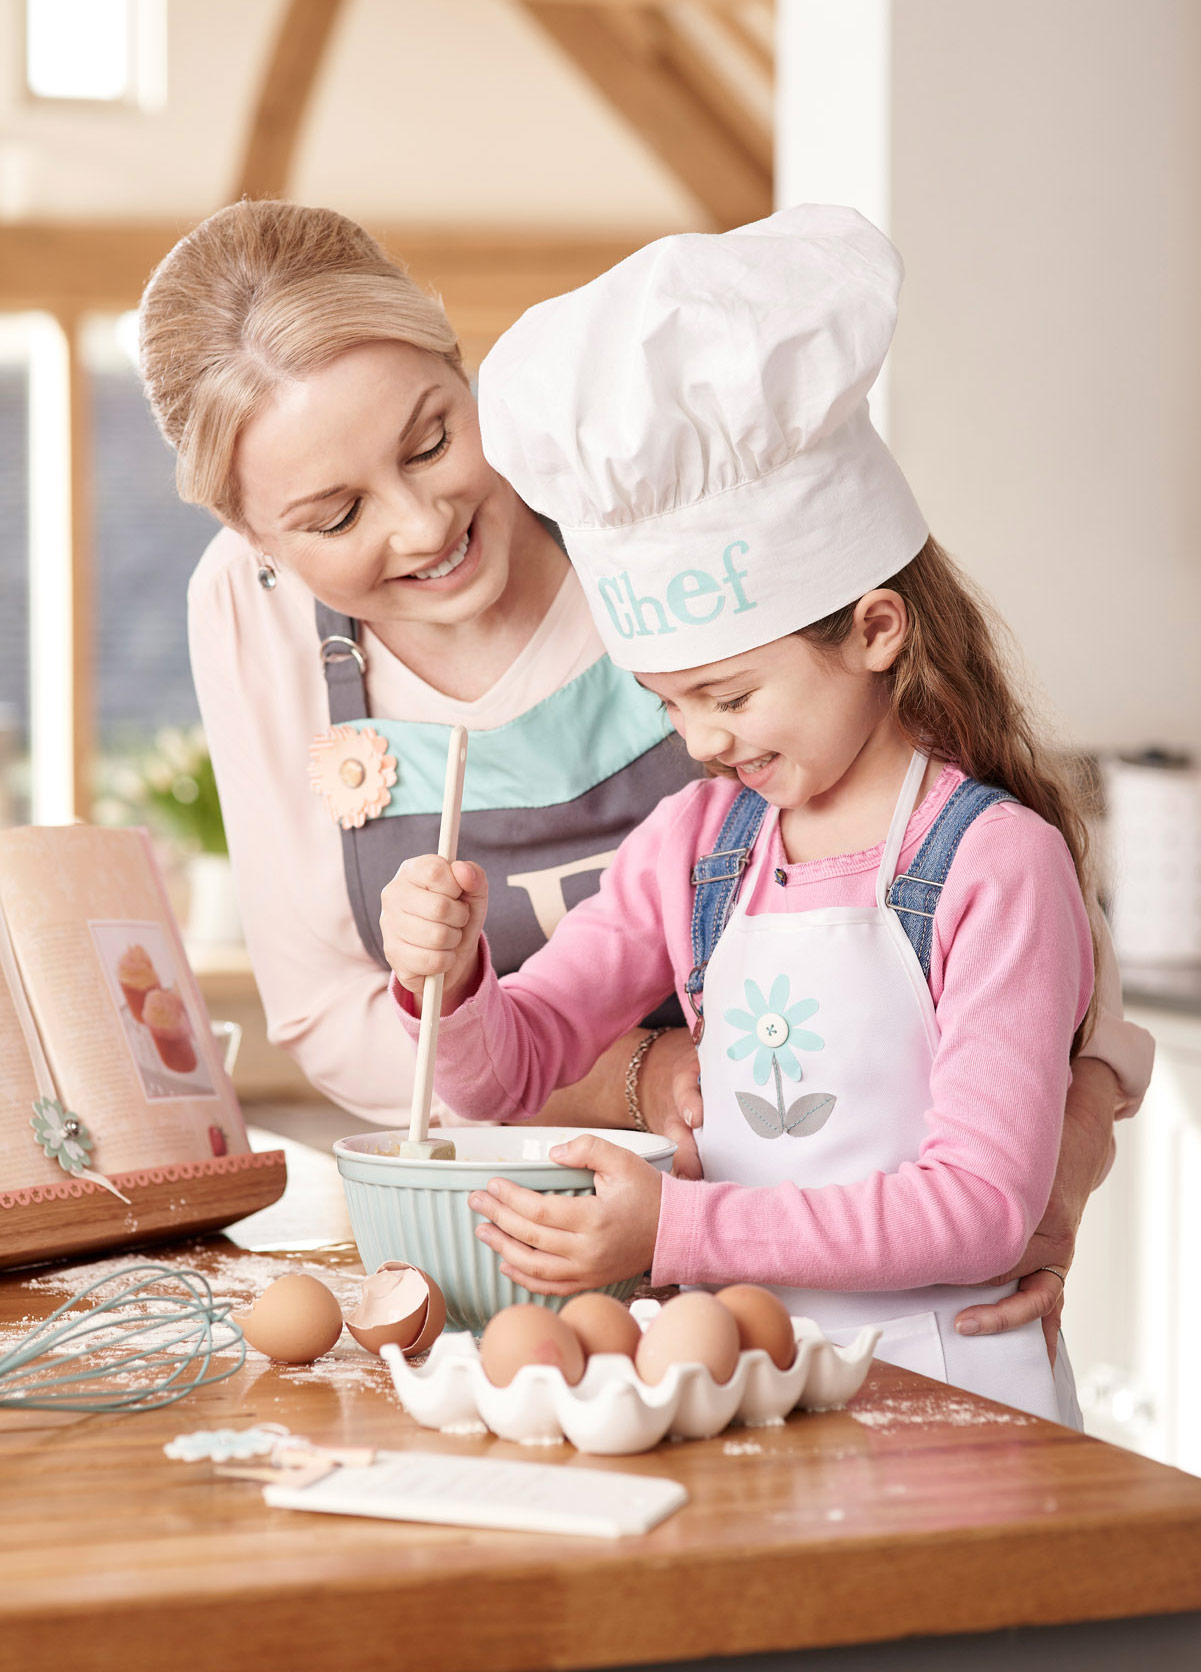 A mum baking with her young daughter